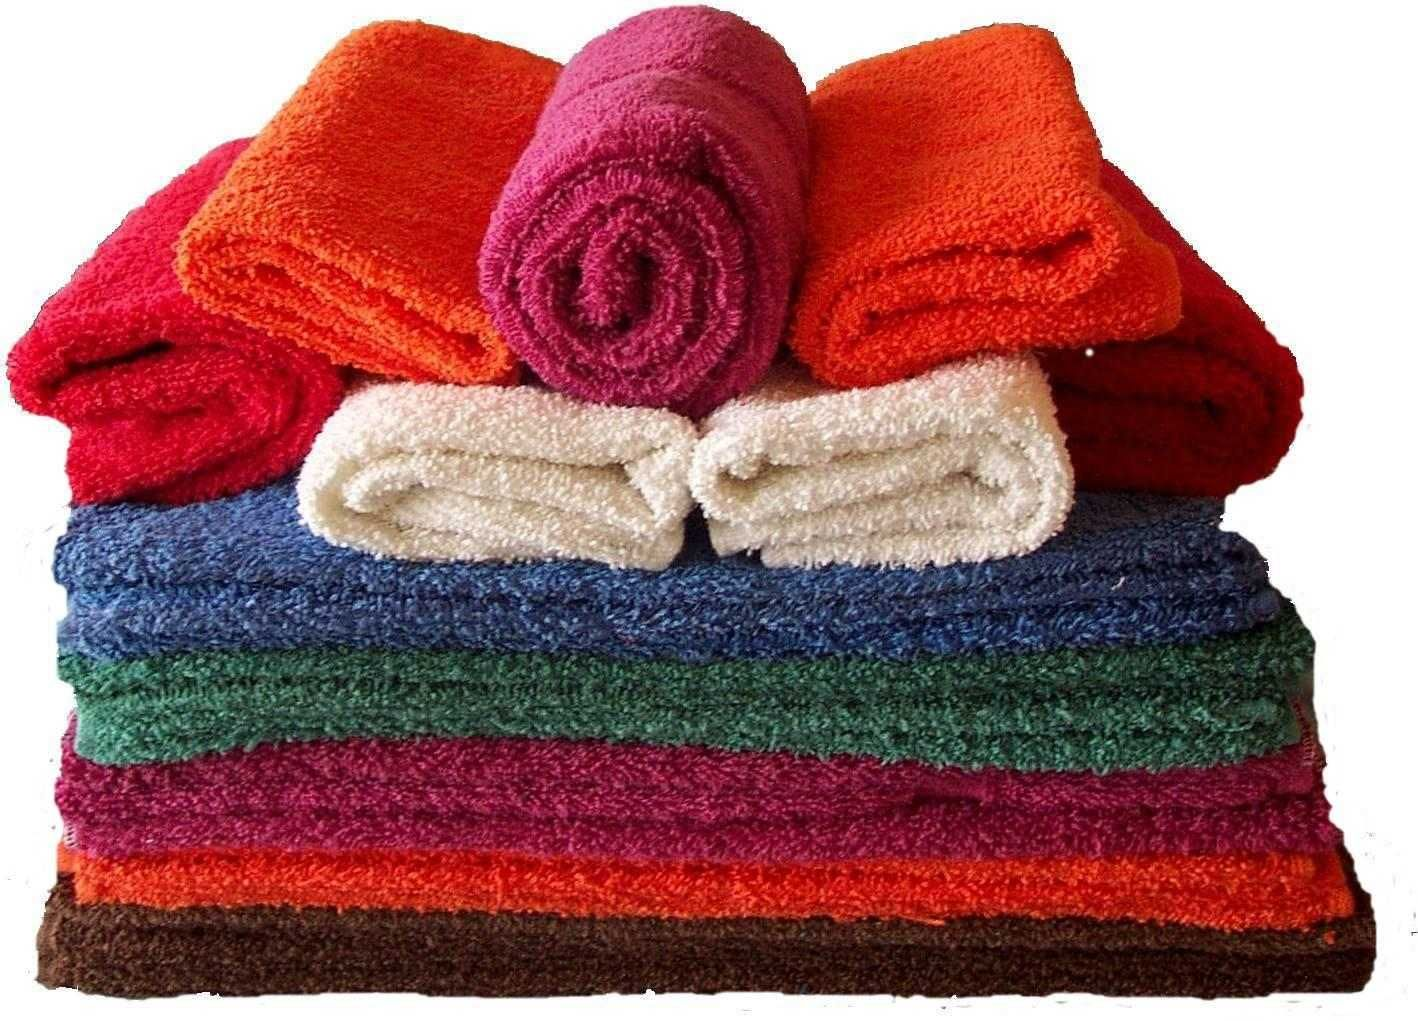 Buying Agents In India Cotton Towels Towel Towel Embroidery